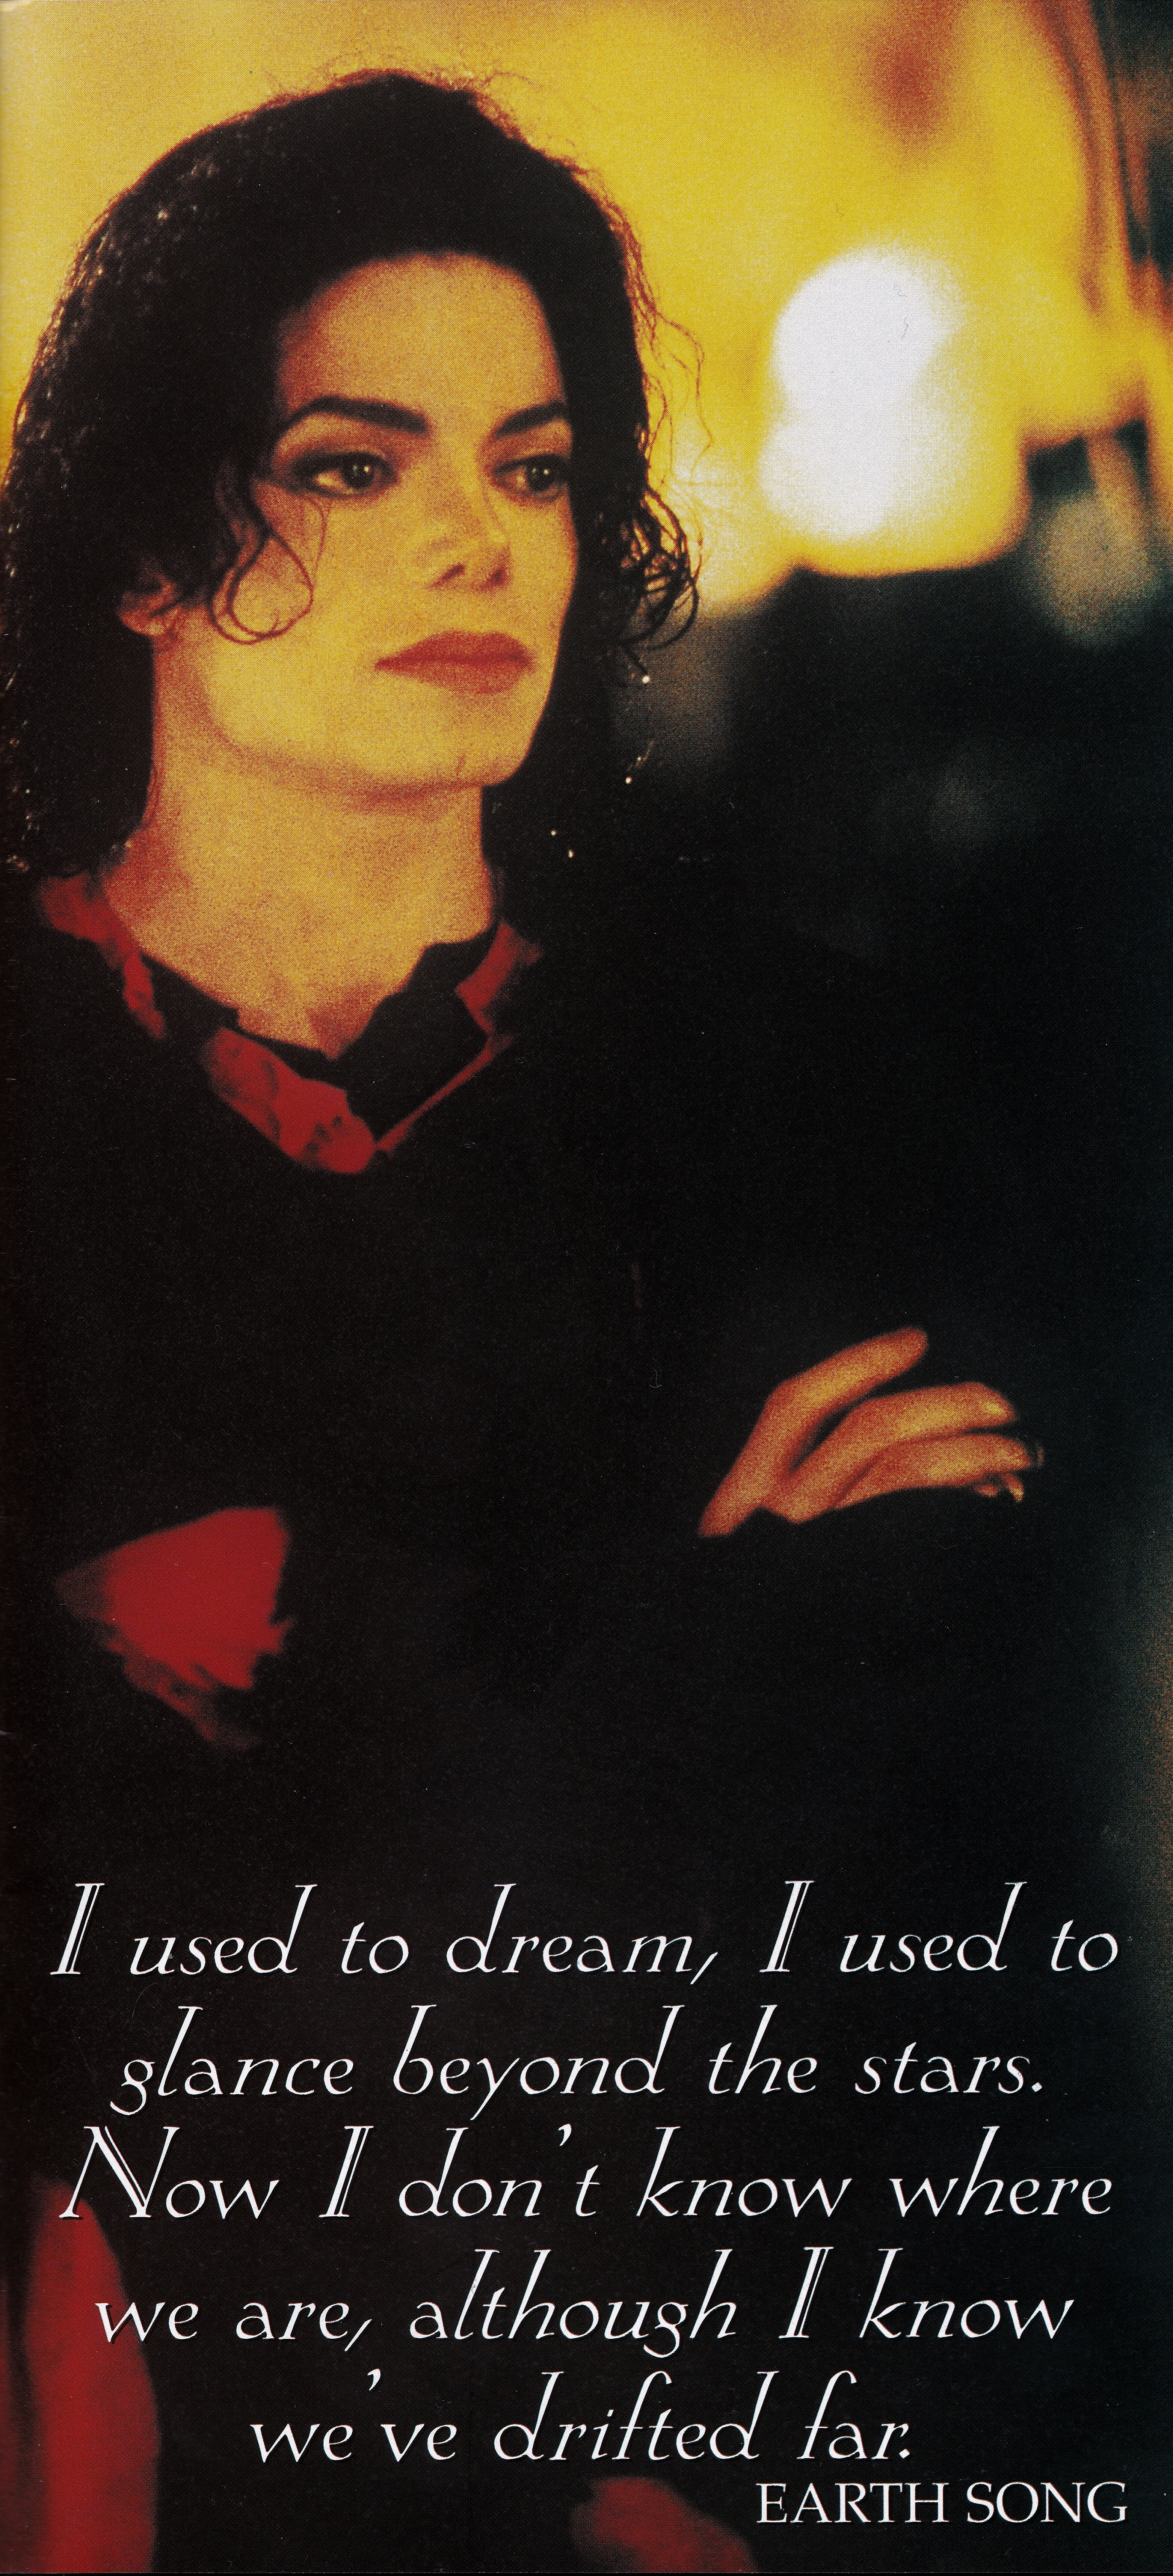 Michael Jackson - HQ Scan - Earth Song